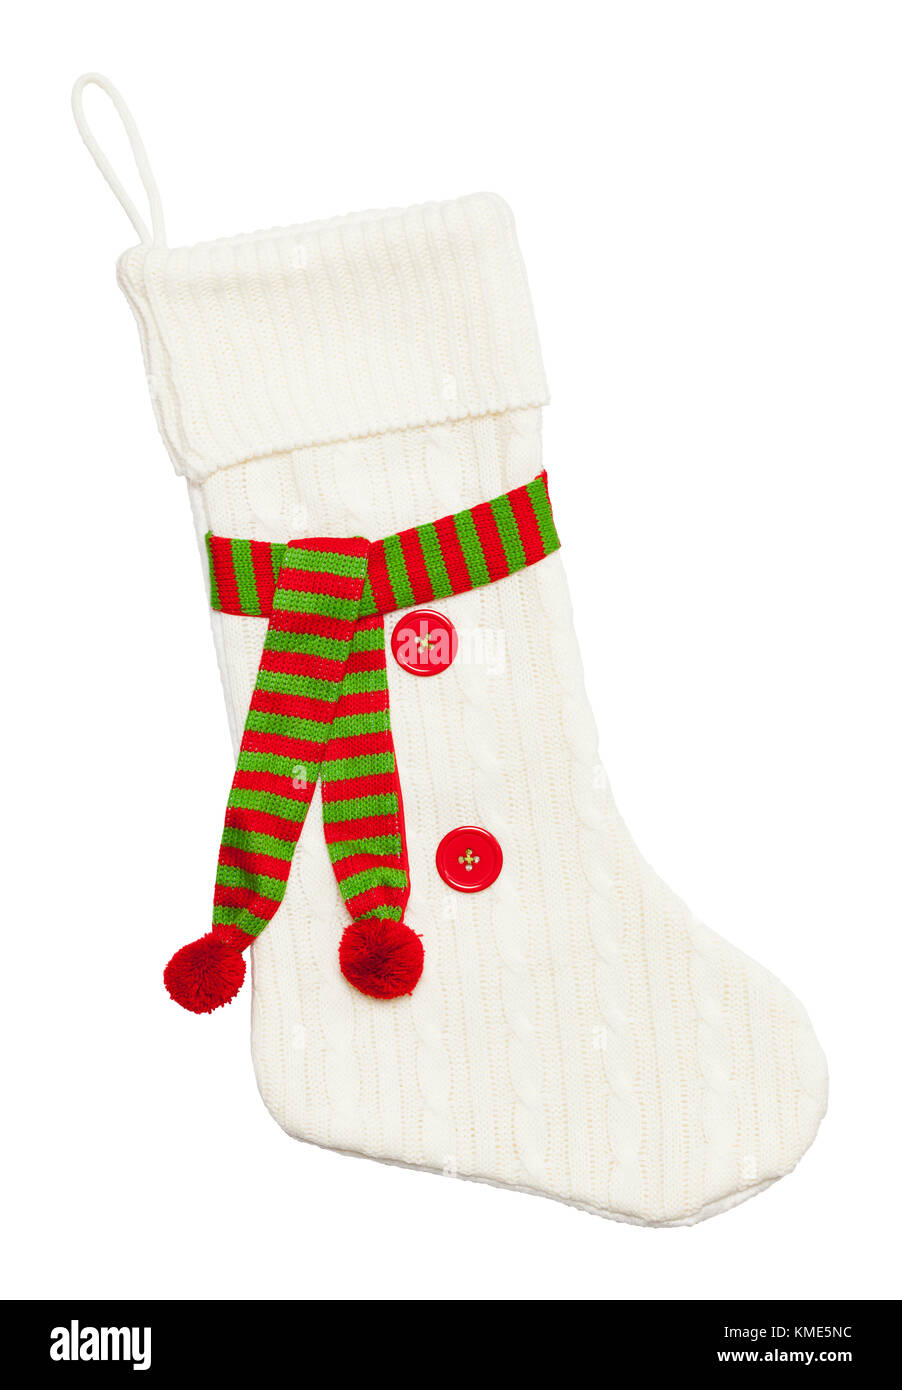 Sweater Christmas Stocking With Scarf and Buttons Isolated on a White Background. - Stock Image